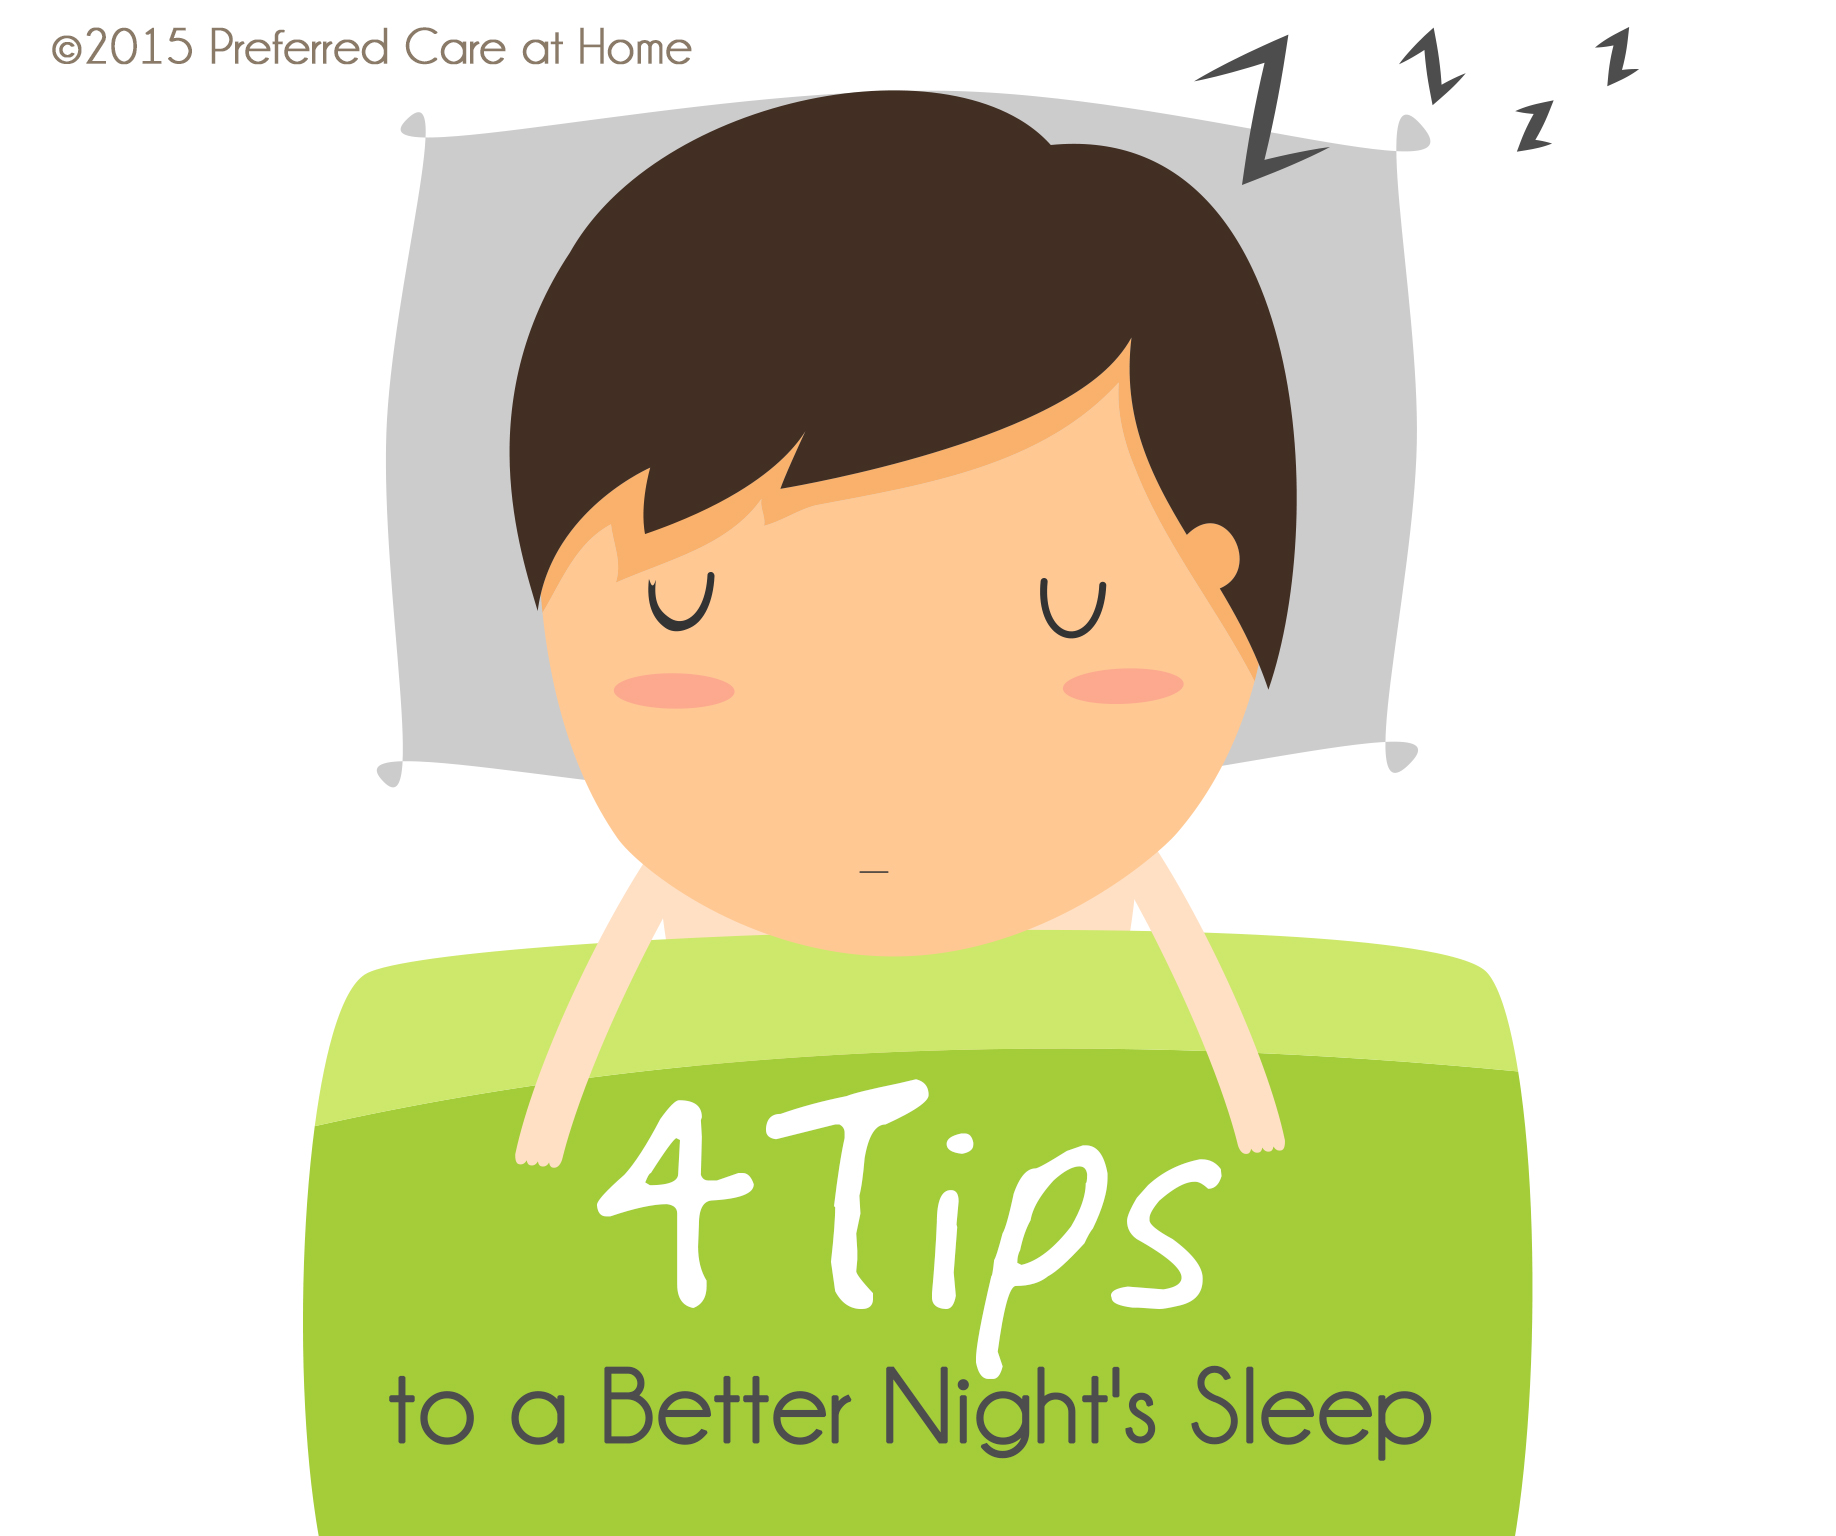 4 Tips to a Better Night's Sleep